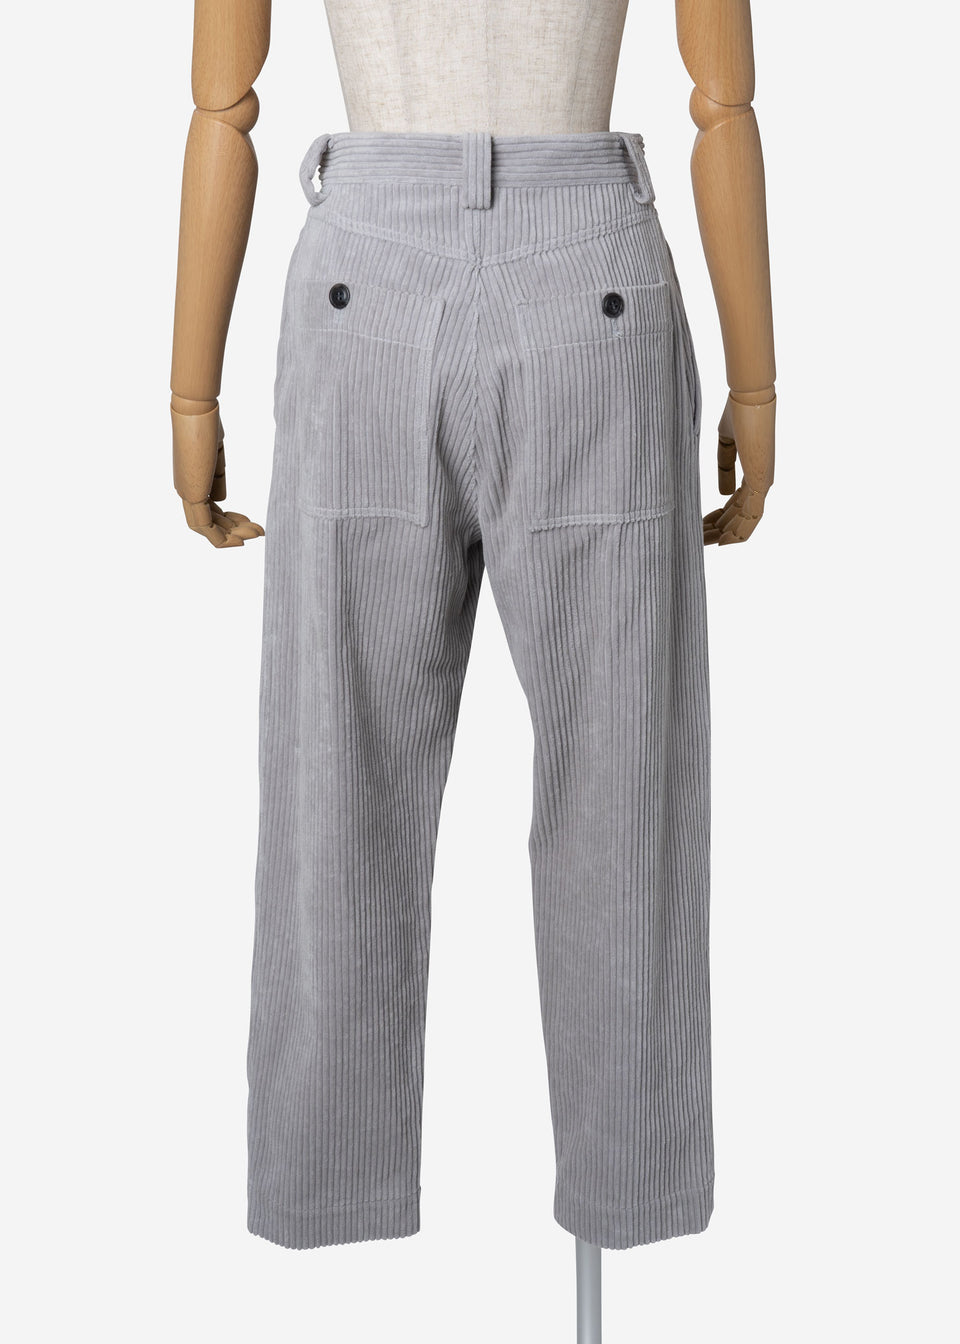 Classic Corduroy Balloon Pants in Gray